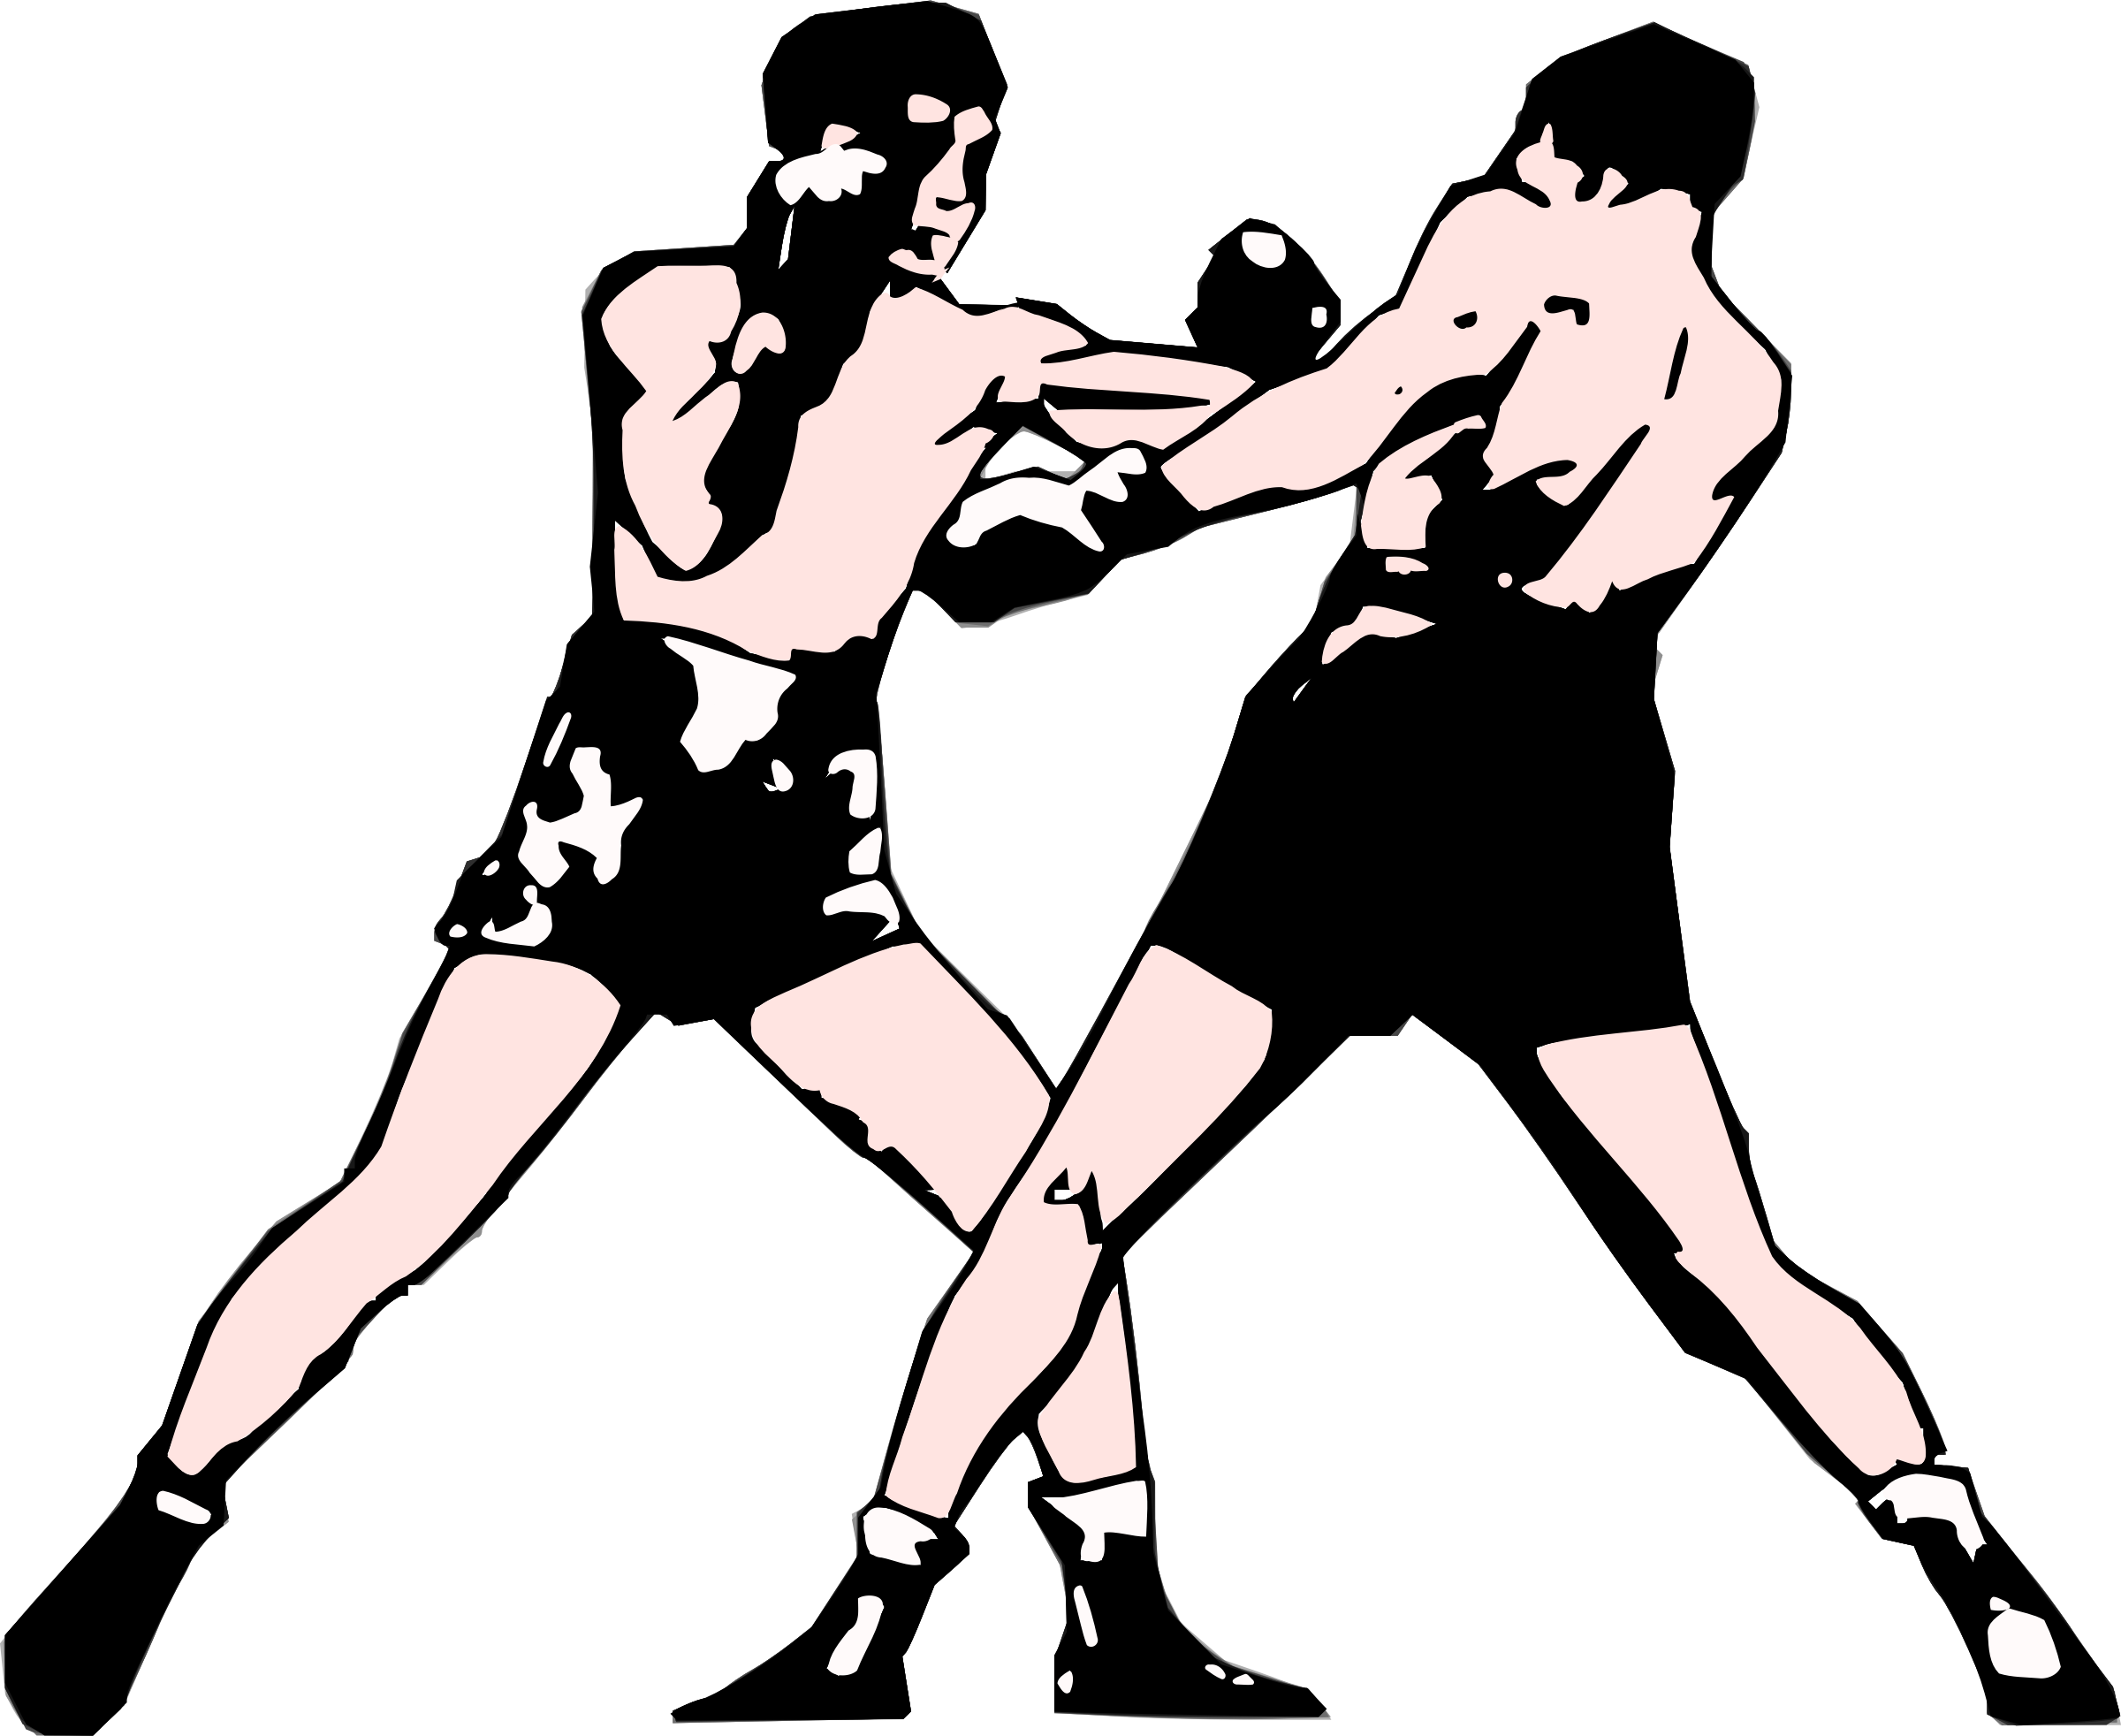 Fighting clipart transparent. Png images free download